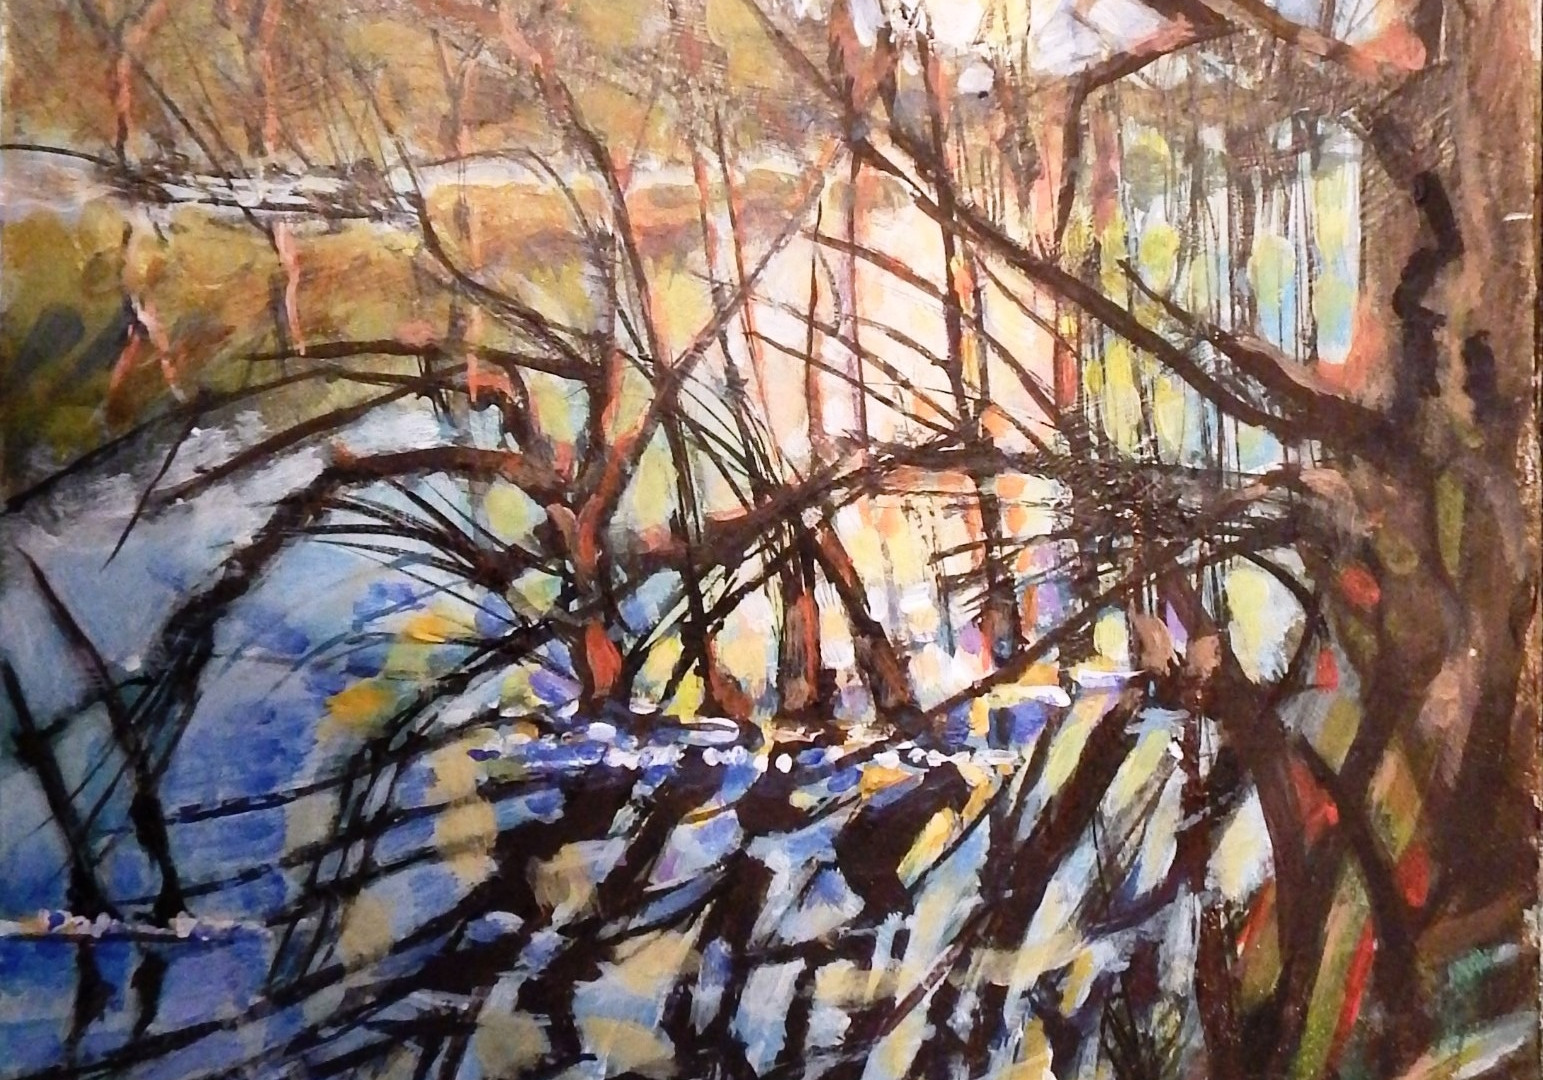 Full Moon, Waterloo Lake ( Roundhay Park, Leeds). Inks & acrylics. 48x36cms.